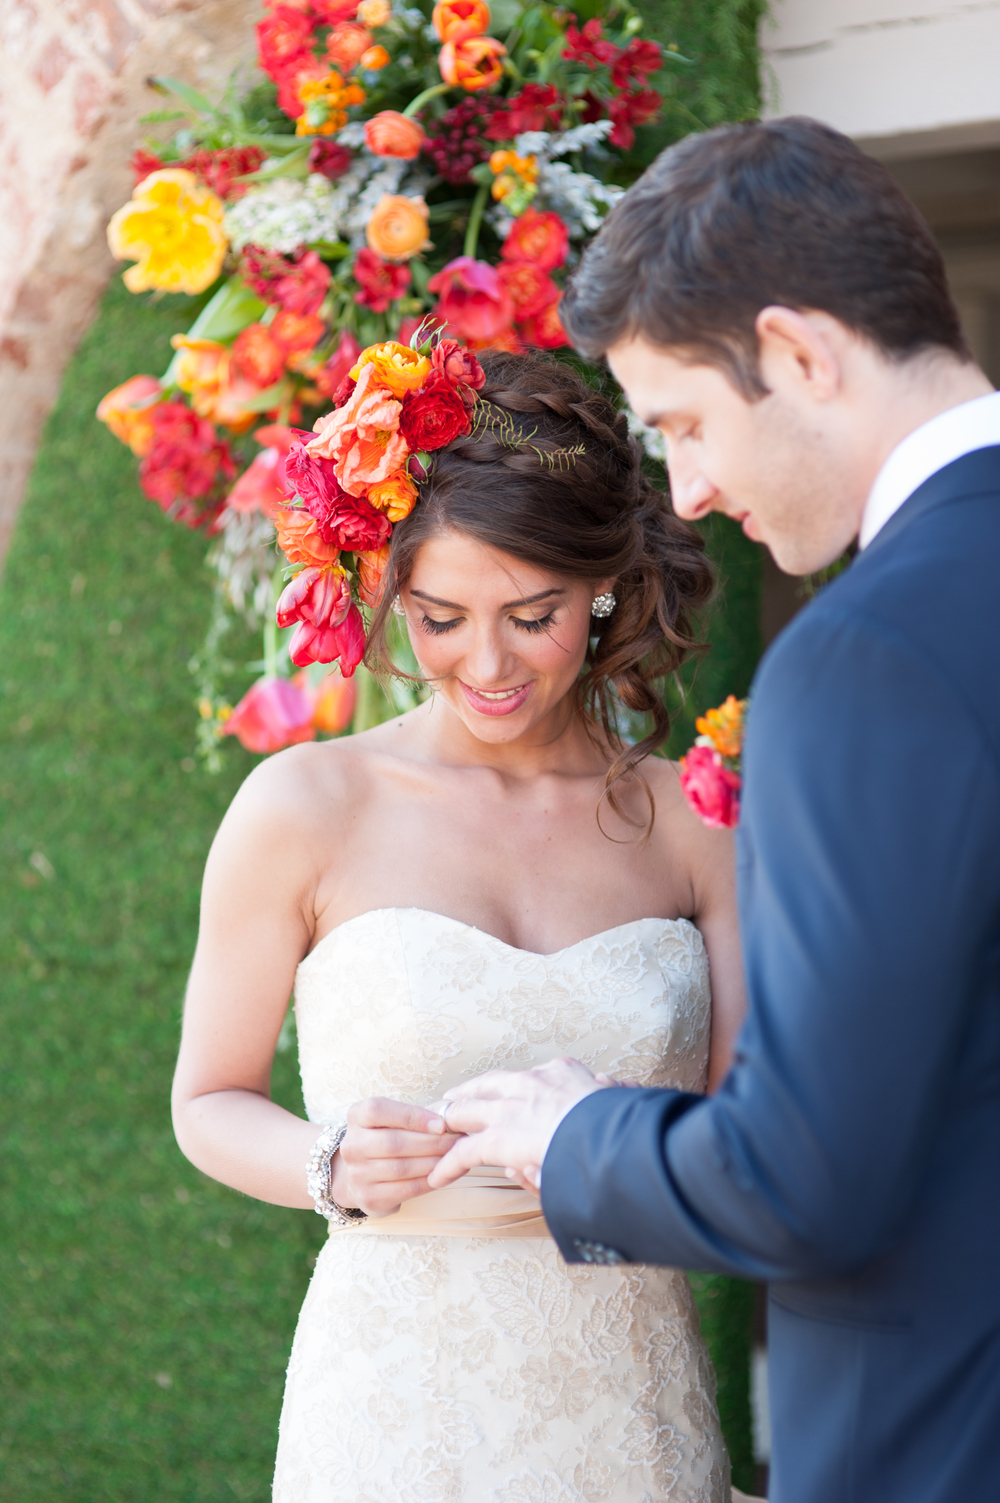 Vibrant Romantic Dutch Wedding at Woodlawn Manor-103.jpg